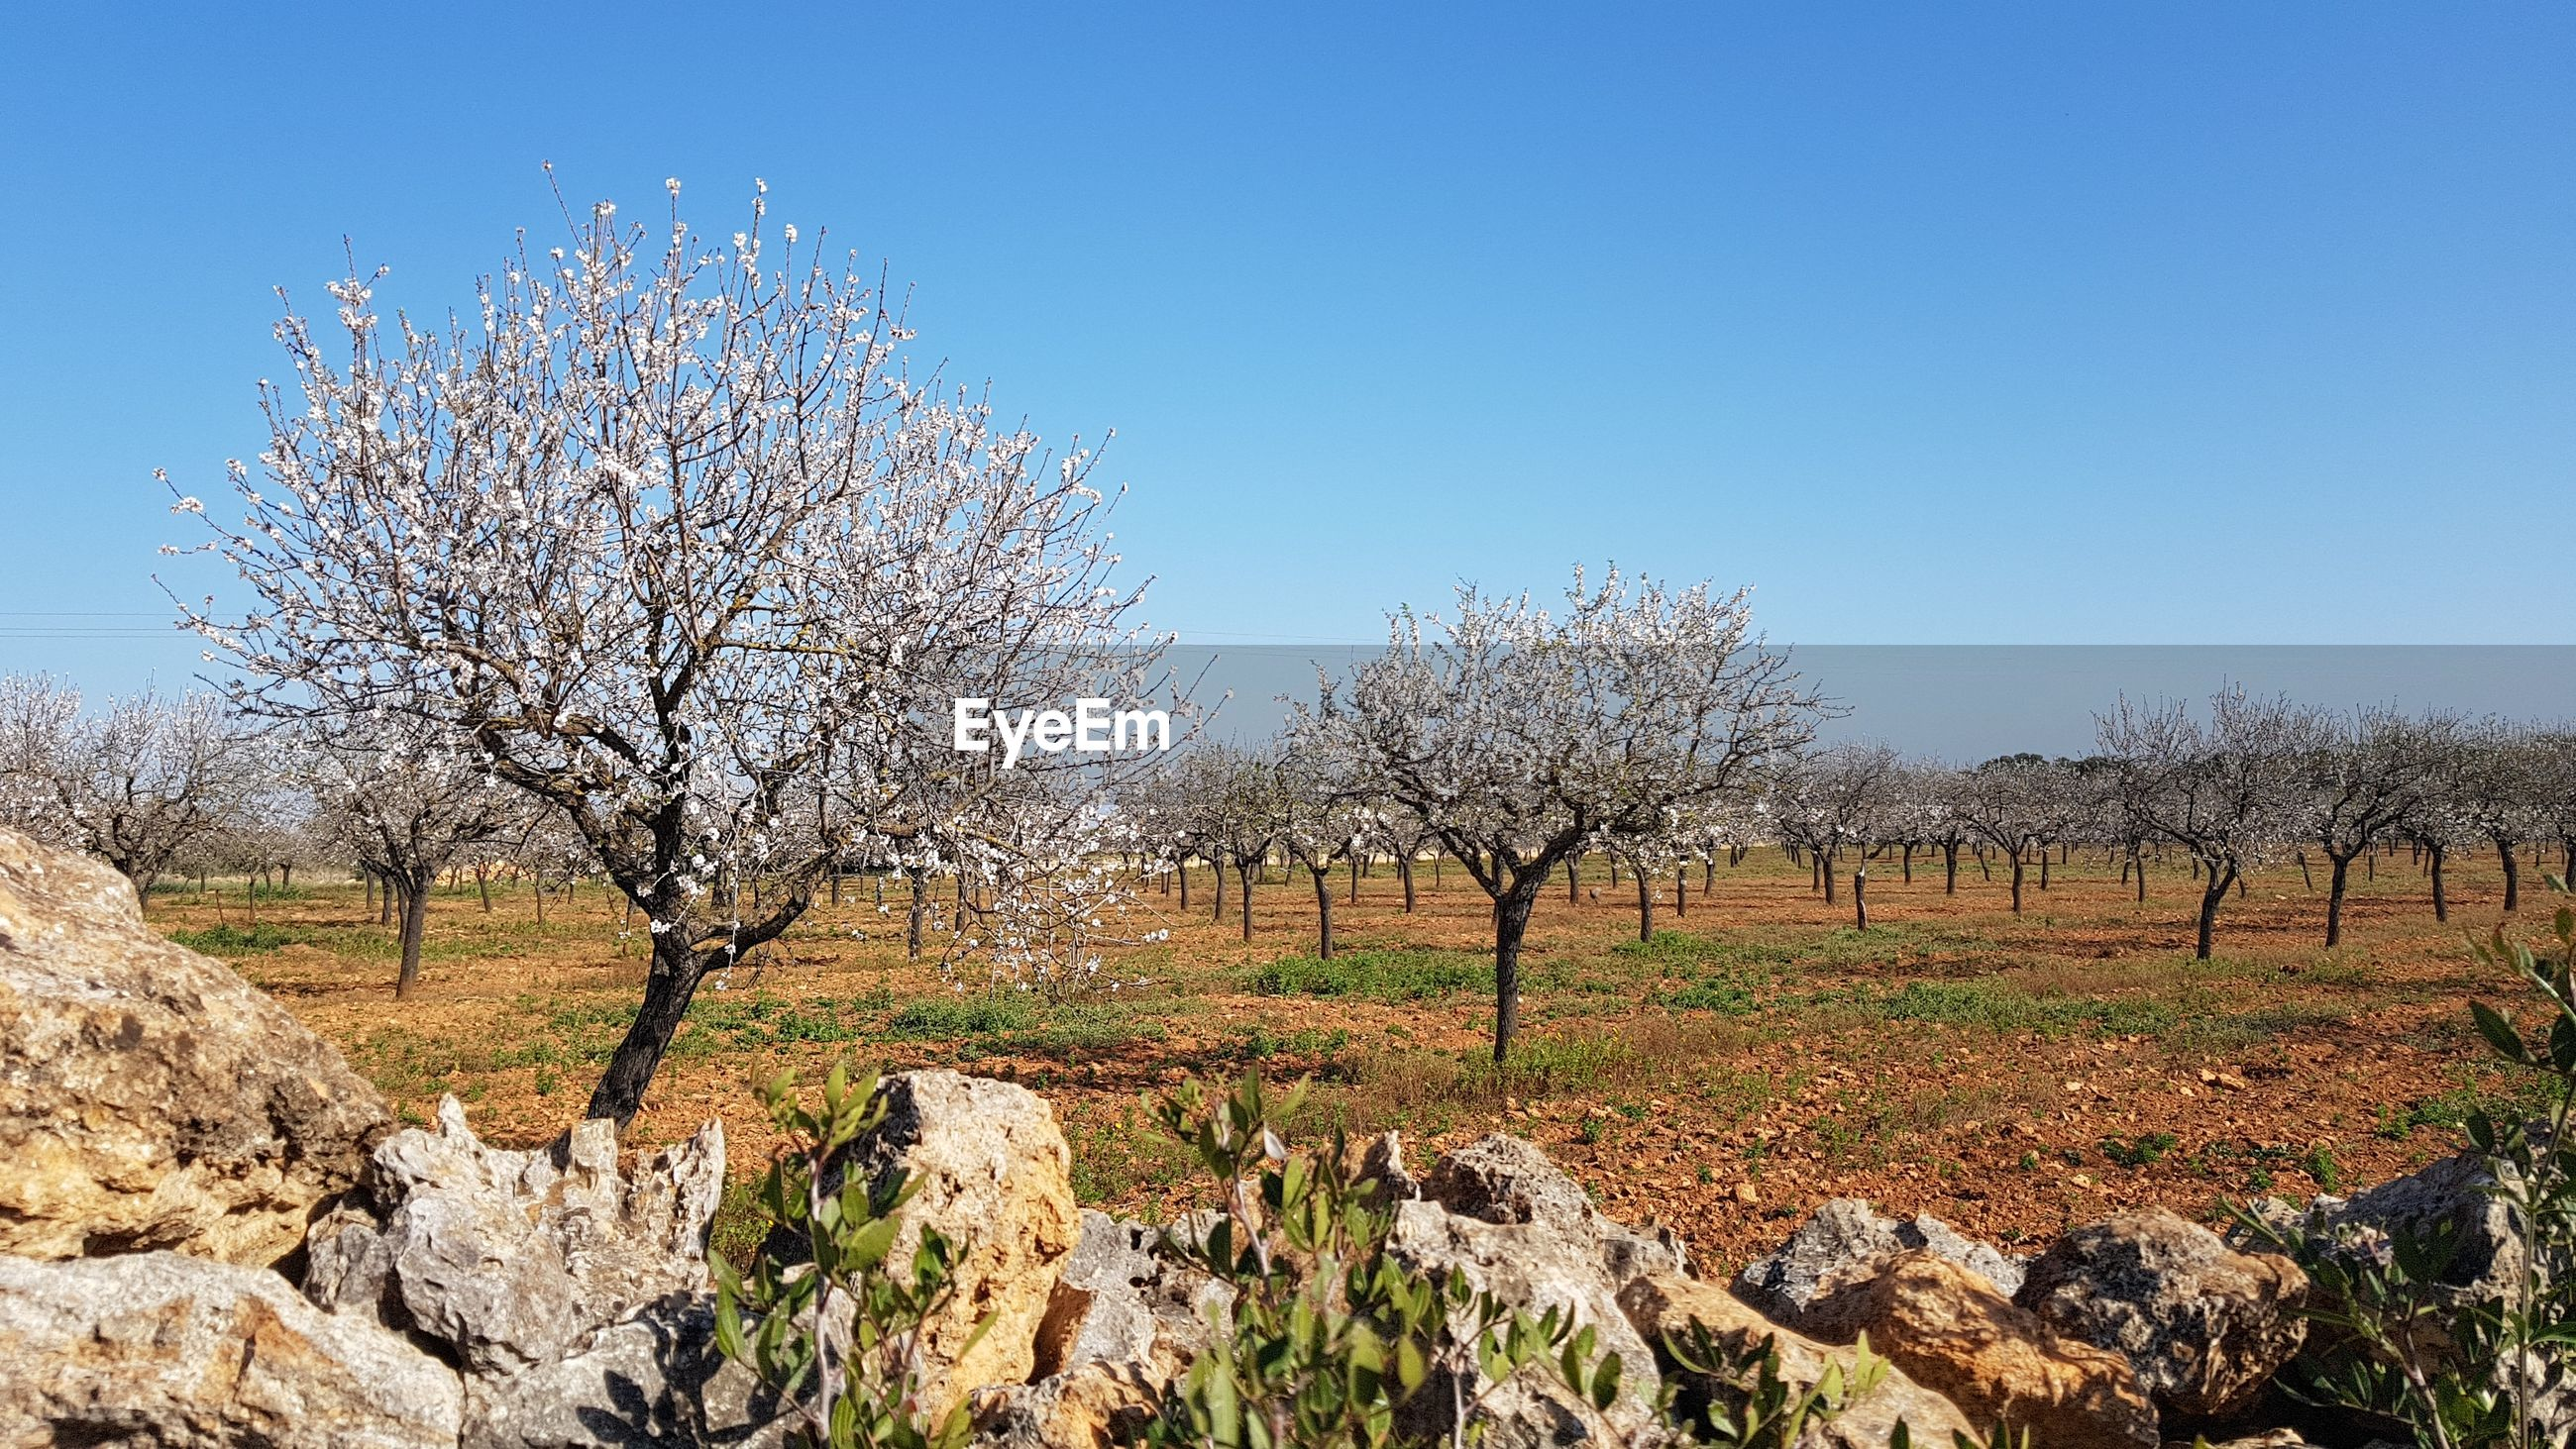 Plantation of blooming almond trees behind stone wall against blue sky